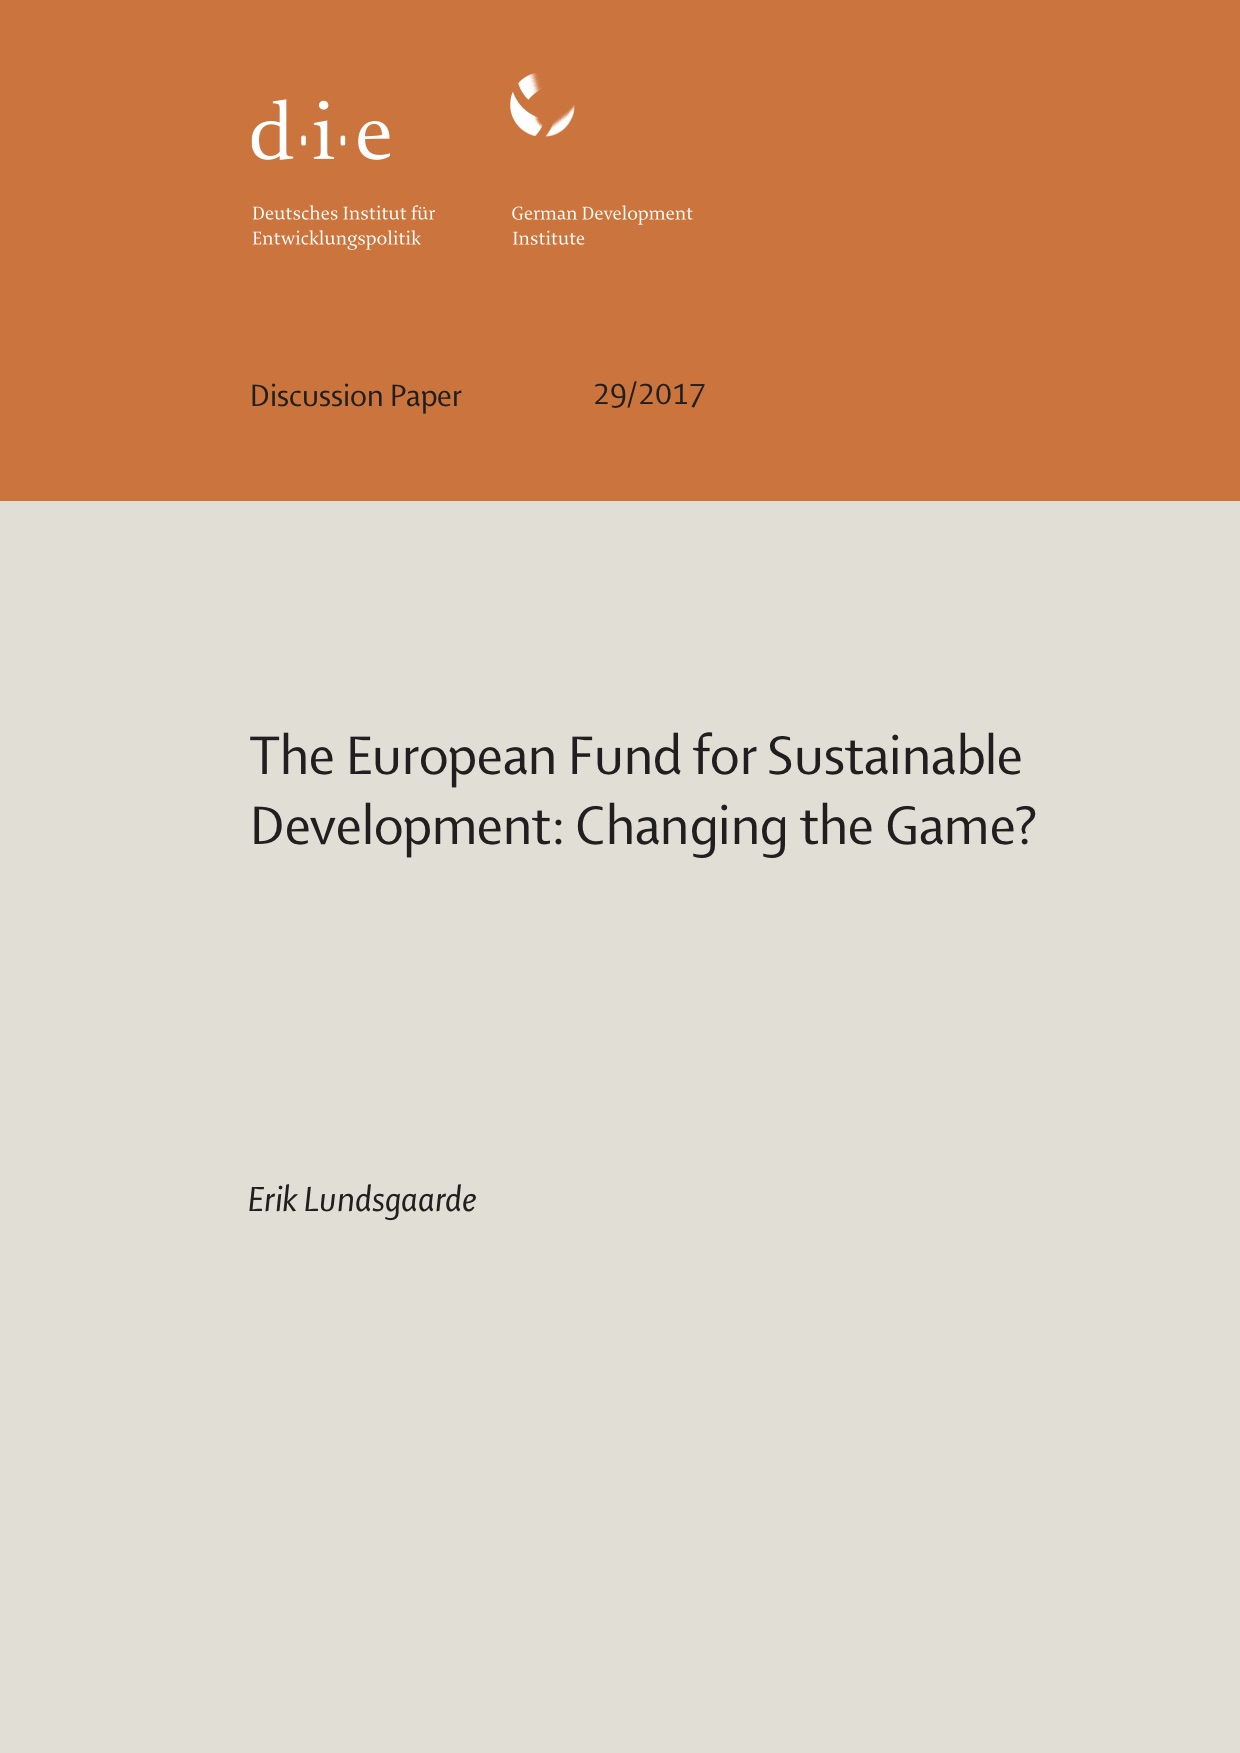 The European Fund for Sustainable Development: Changing the Game?